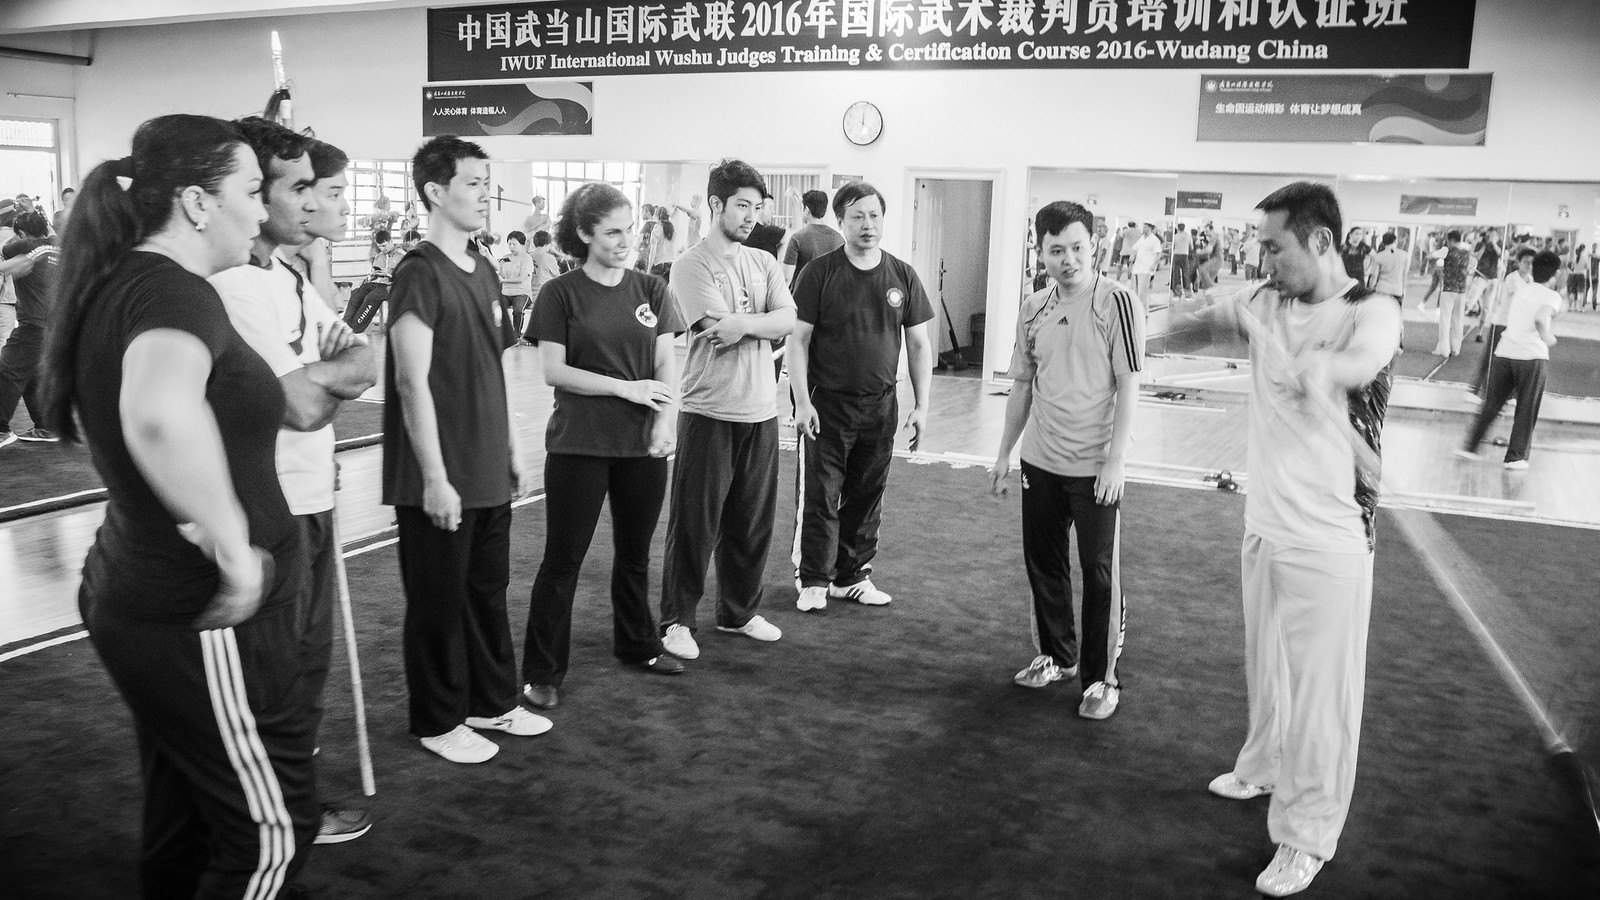 2016 IWUF International Wushu Judges Certification Course